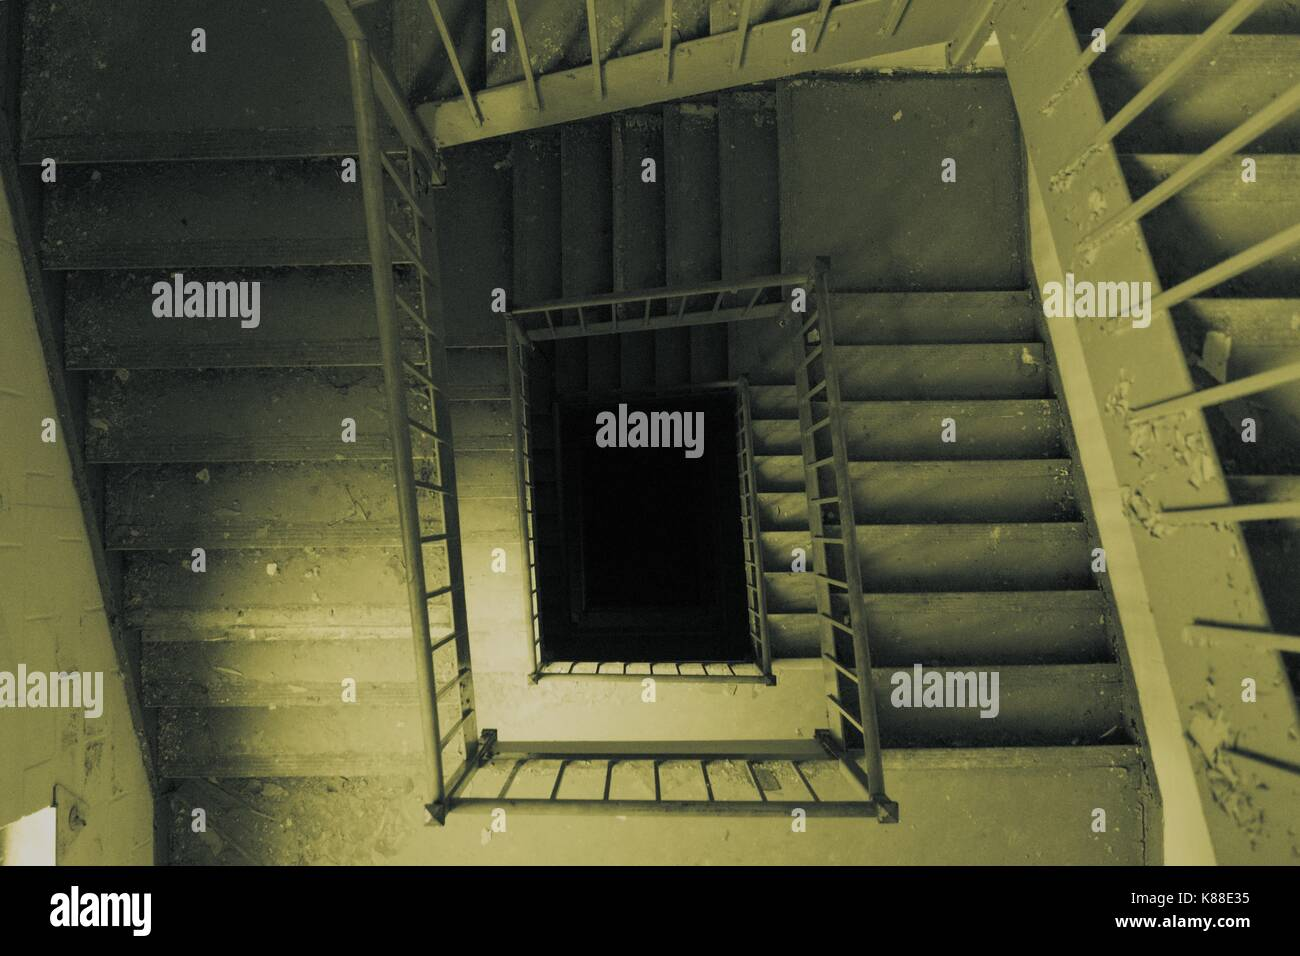 Stairs Descending into Darkness - Stock Image